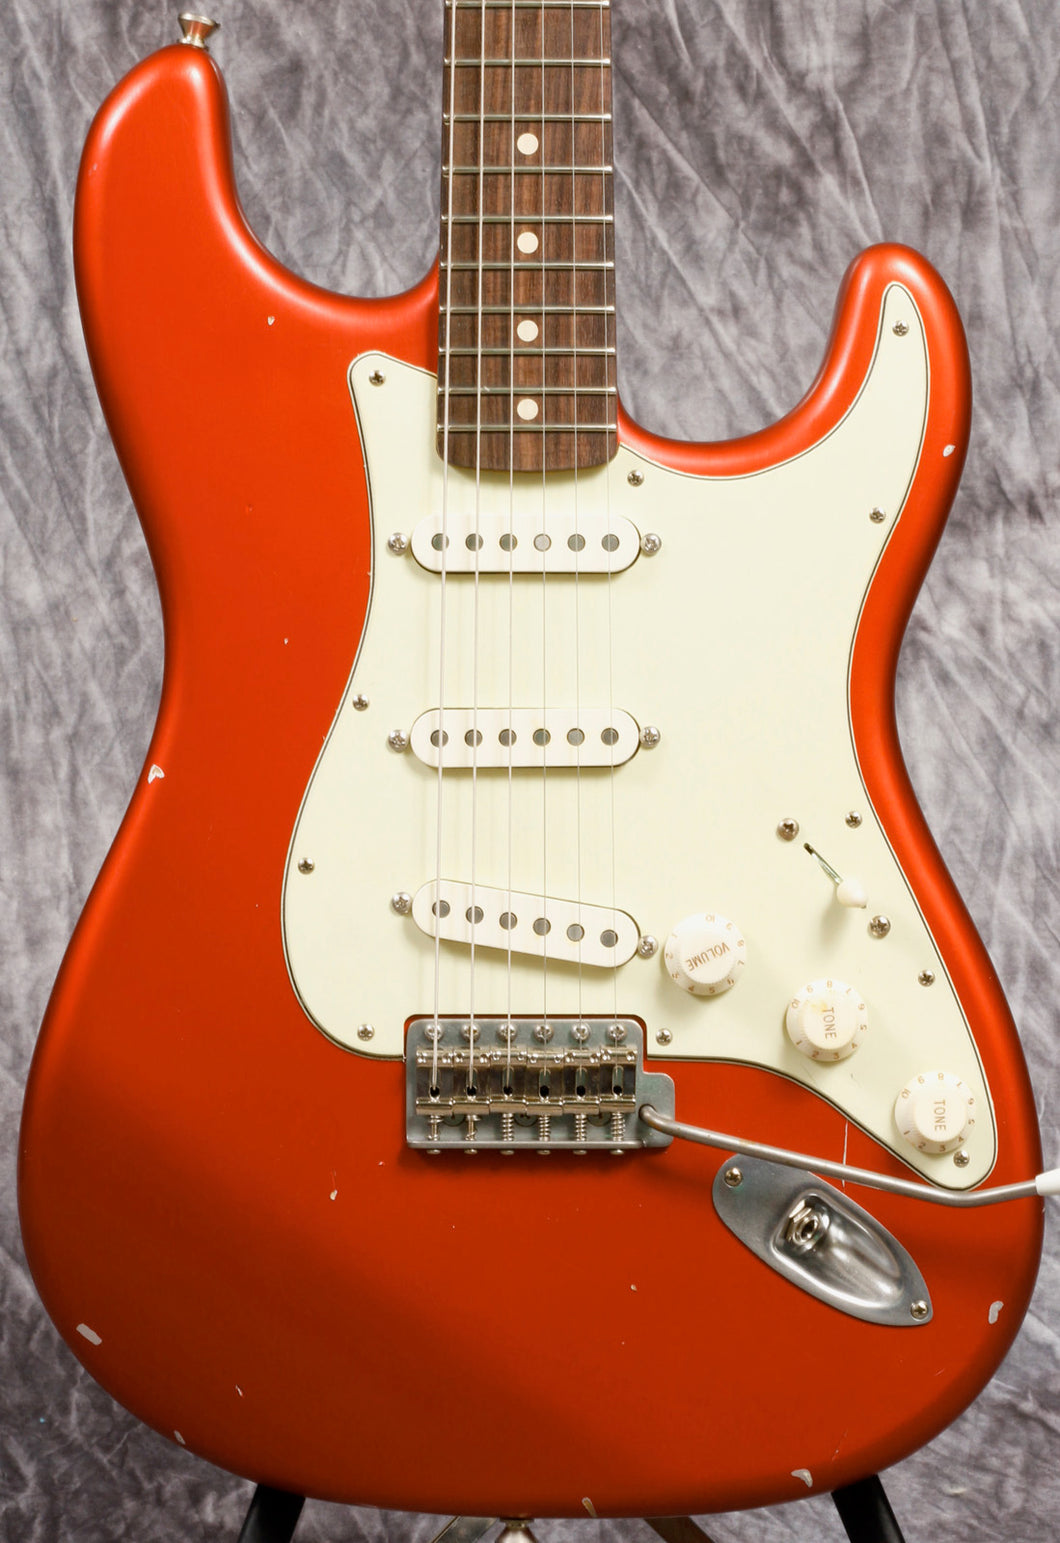 Nash S-63 Candy Apple Red Rosewood